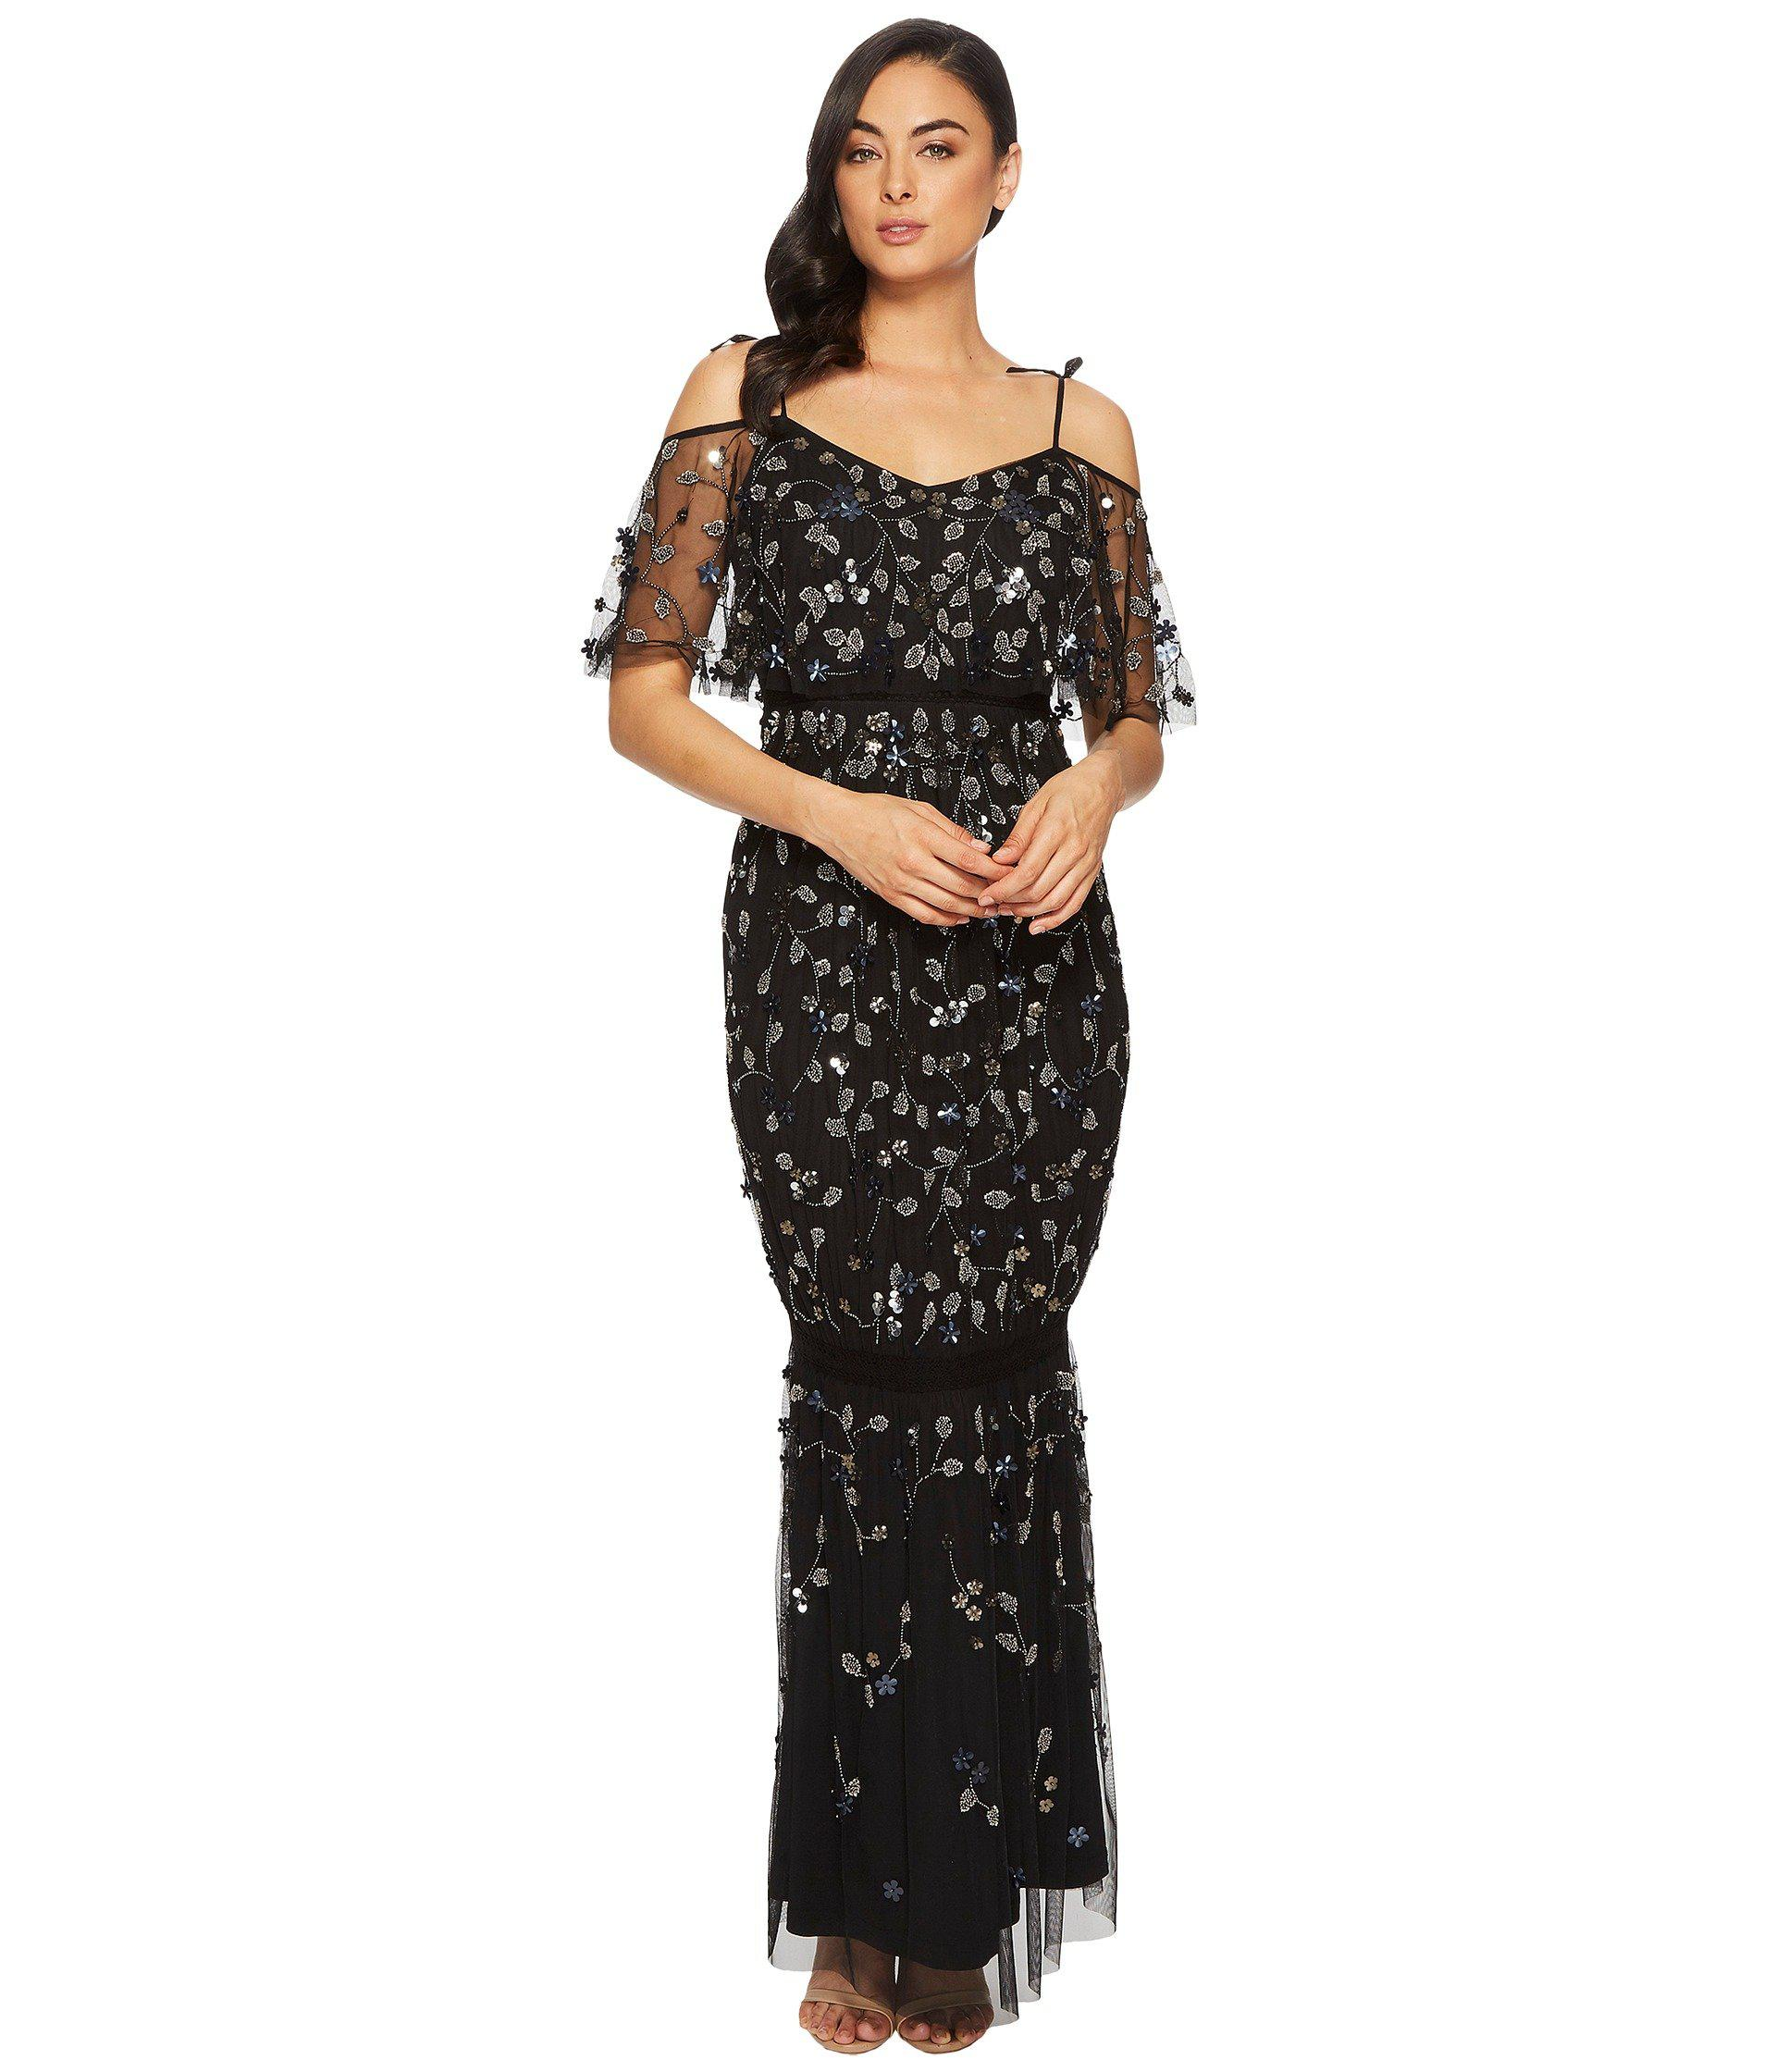 fe3b161617c Adrianna Papell Long 3d Beaded Boho Gown With Tie Shoulder Detail in ...